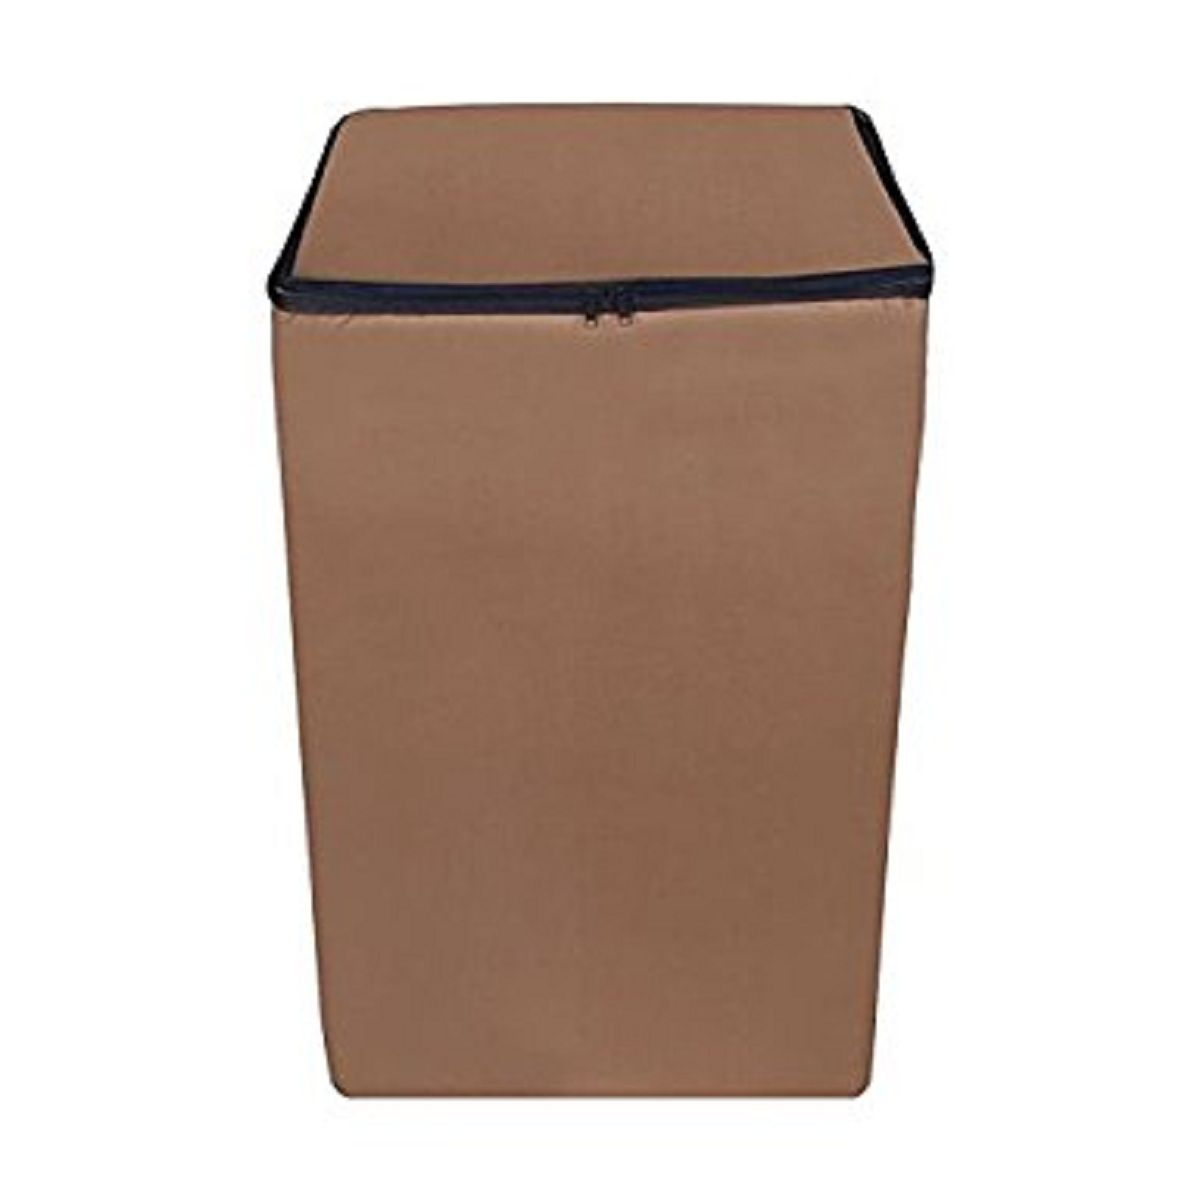 Kuber Industries™ Top Load Fully Automatic Washing Machine Cover Brown Color (Suitable For 6 kg, 6.5 kg, 7 kg, 7.5 kg )